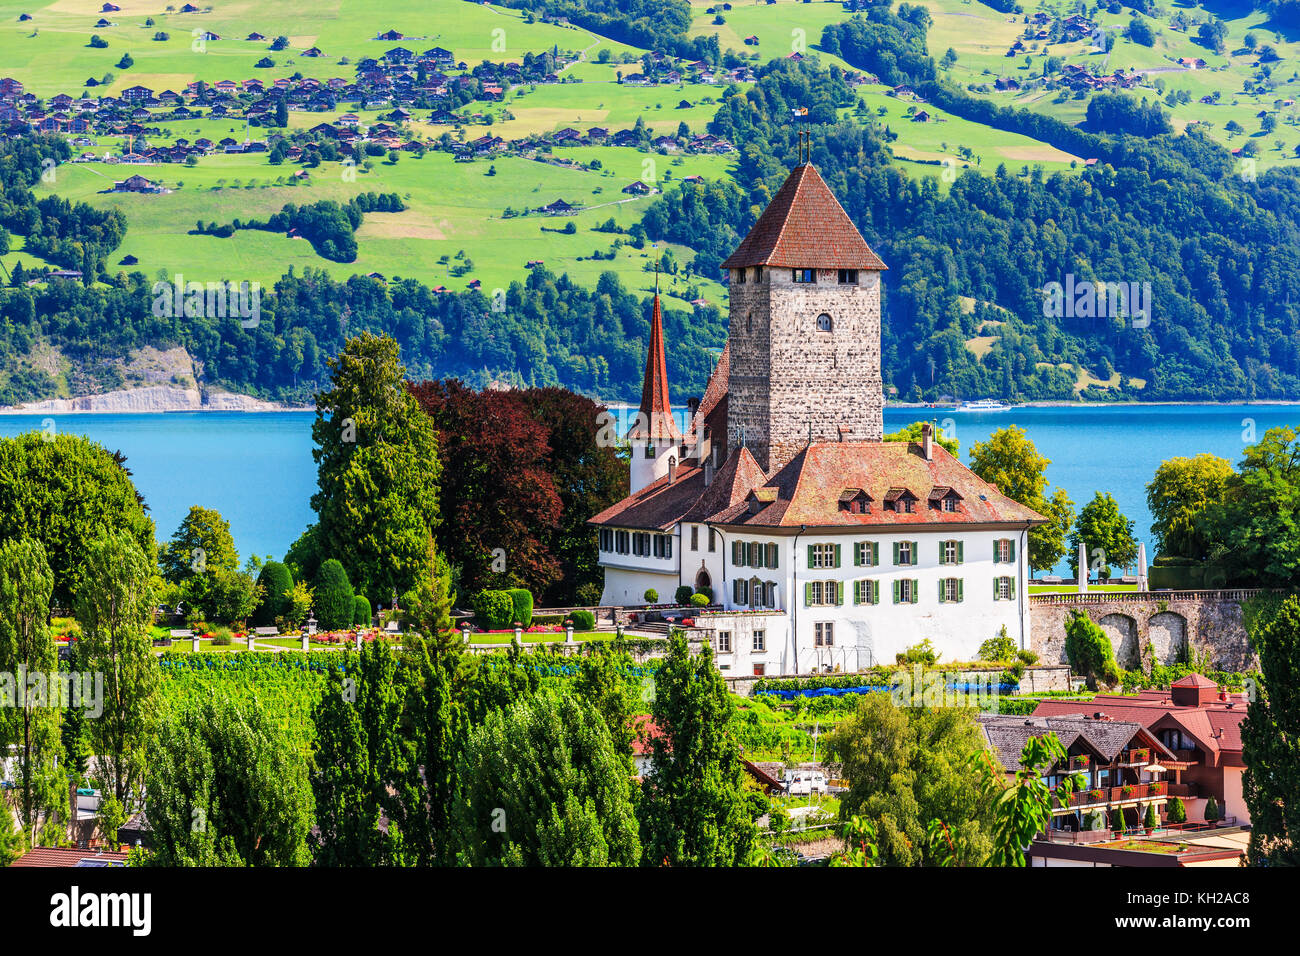 Spiez, Switzerland. Spiez castle by Thun lake in the Berner Oberland. - Stock Image